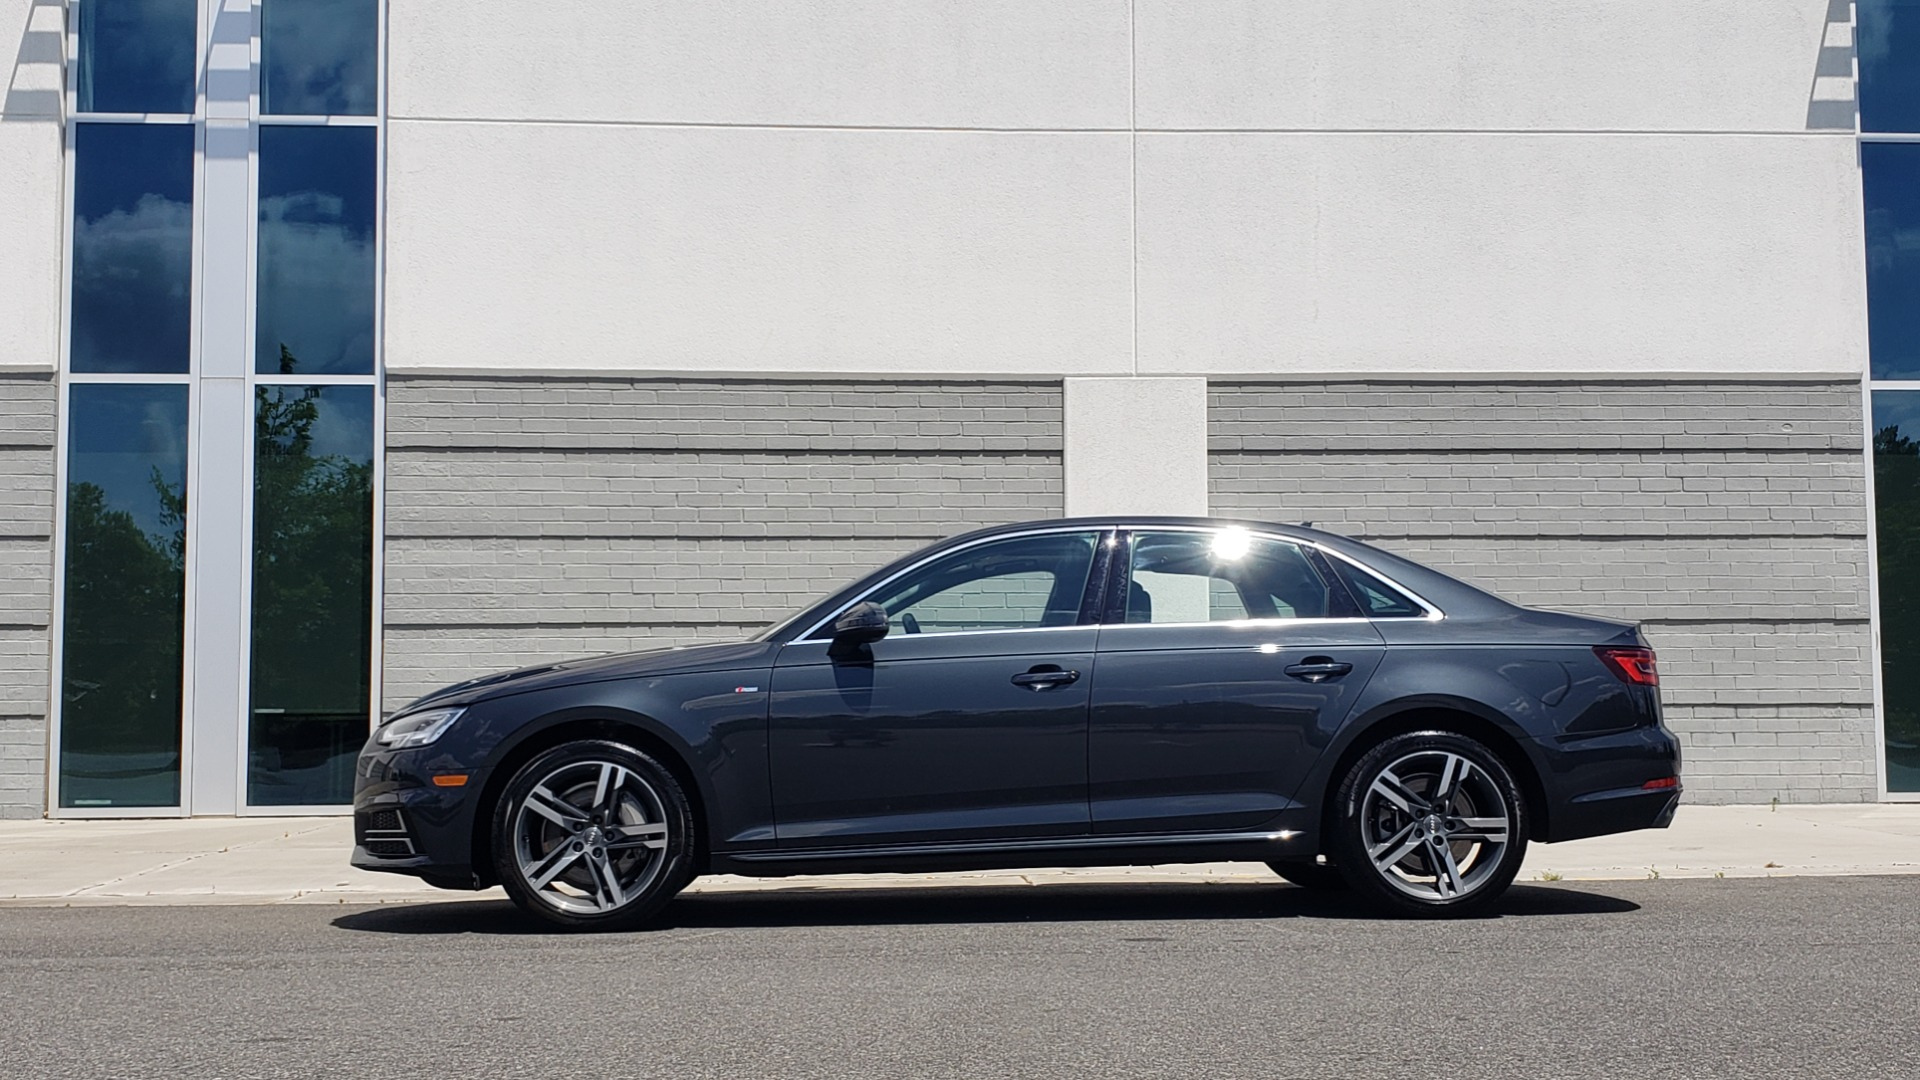 Used 2018 Audi A4 TECH PREMIUM PLUS / NAV / B&O SND / SUNROOF / CLD WTHR / REARVIEW for sale $28,595 at Formula Imports in Charlotte NC 28227 5